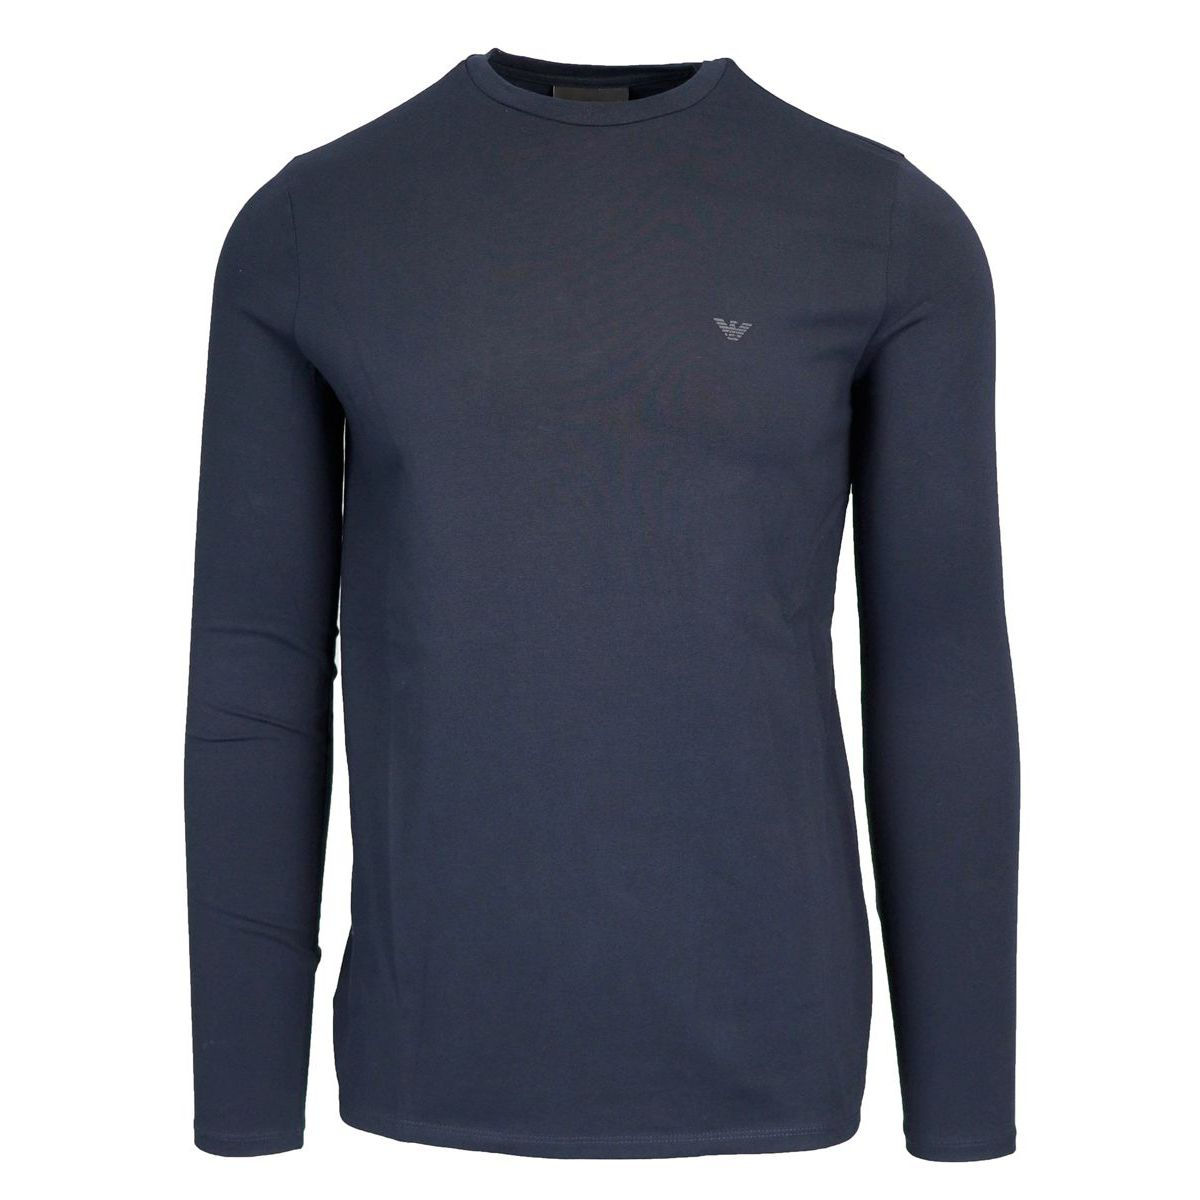 T-shirt with long sleeves in stretch cotton Navy Emporio Armani